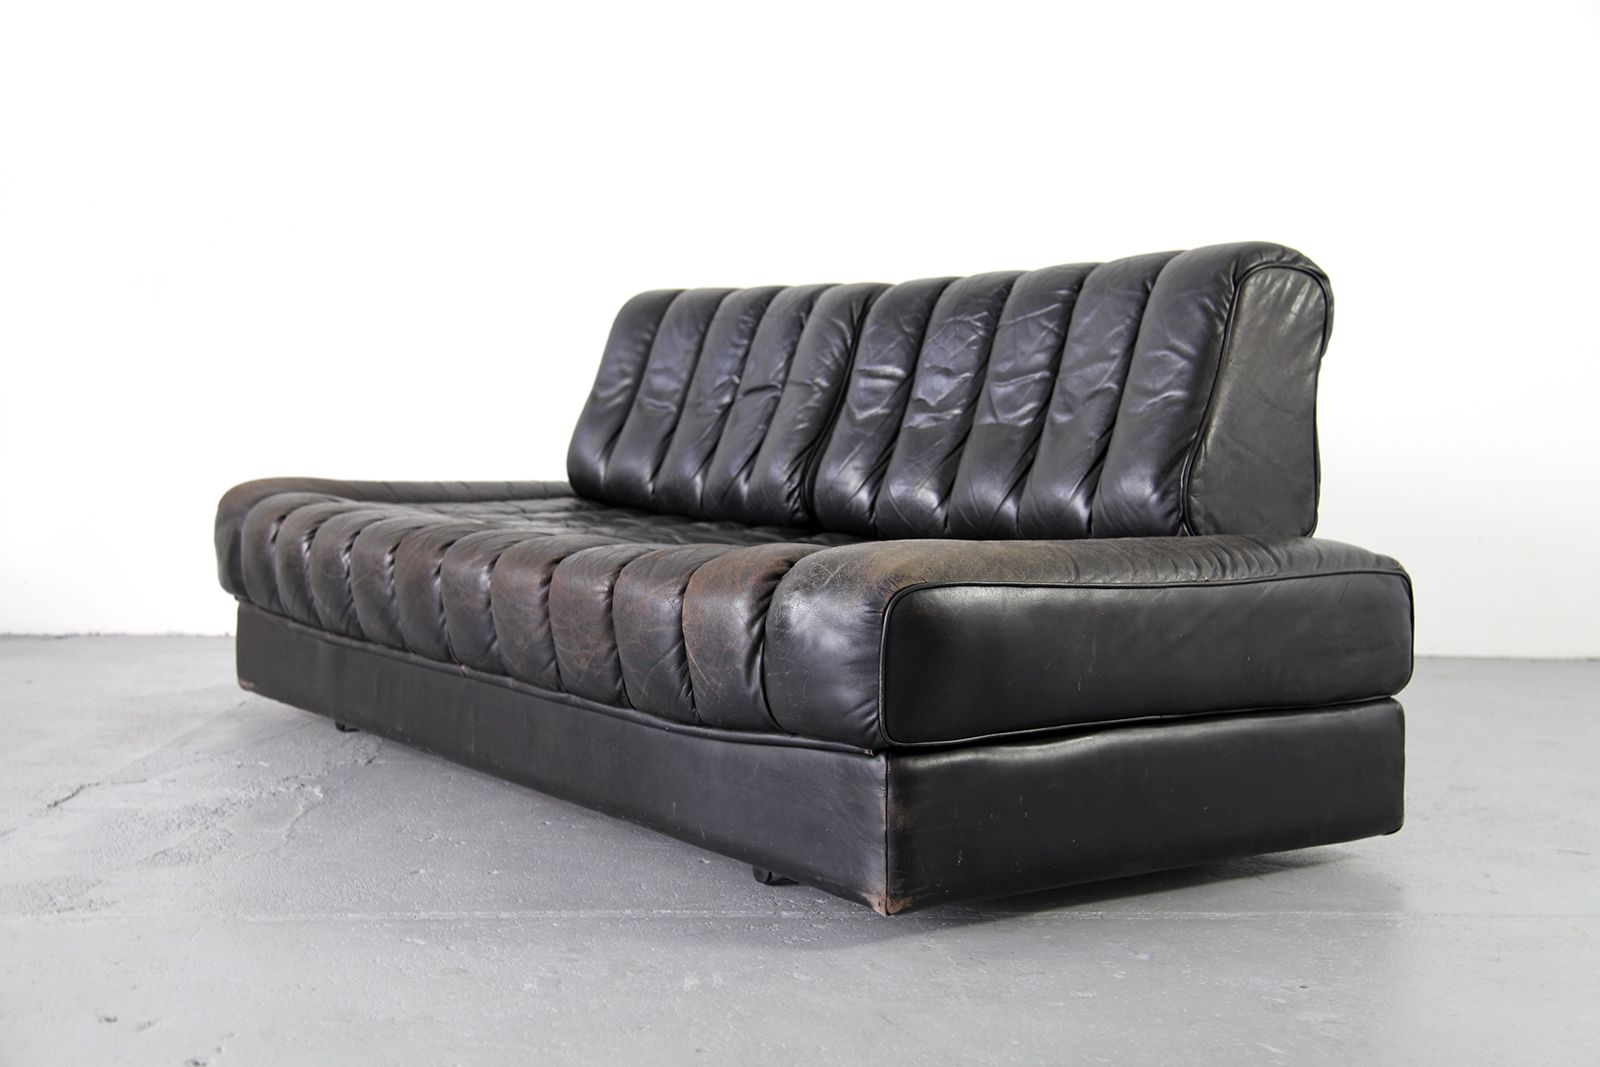 schlafsofa ds 85 von de sede 1960s bei pamono kaufen. Black Bedroom Furniture Sets. Home Design Ideas